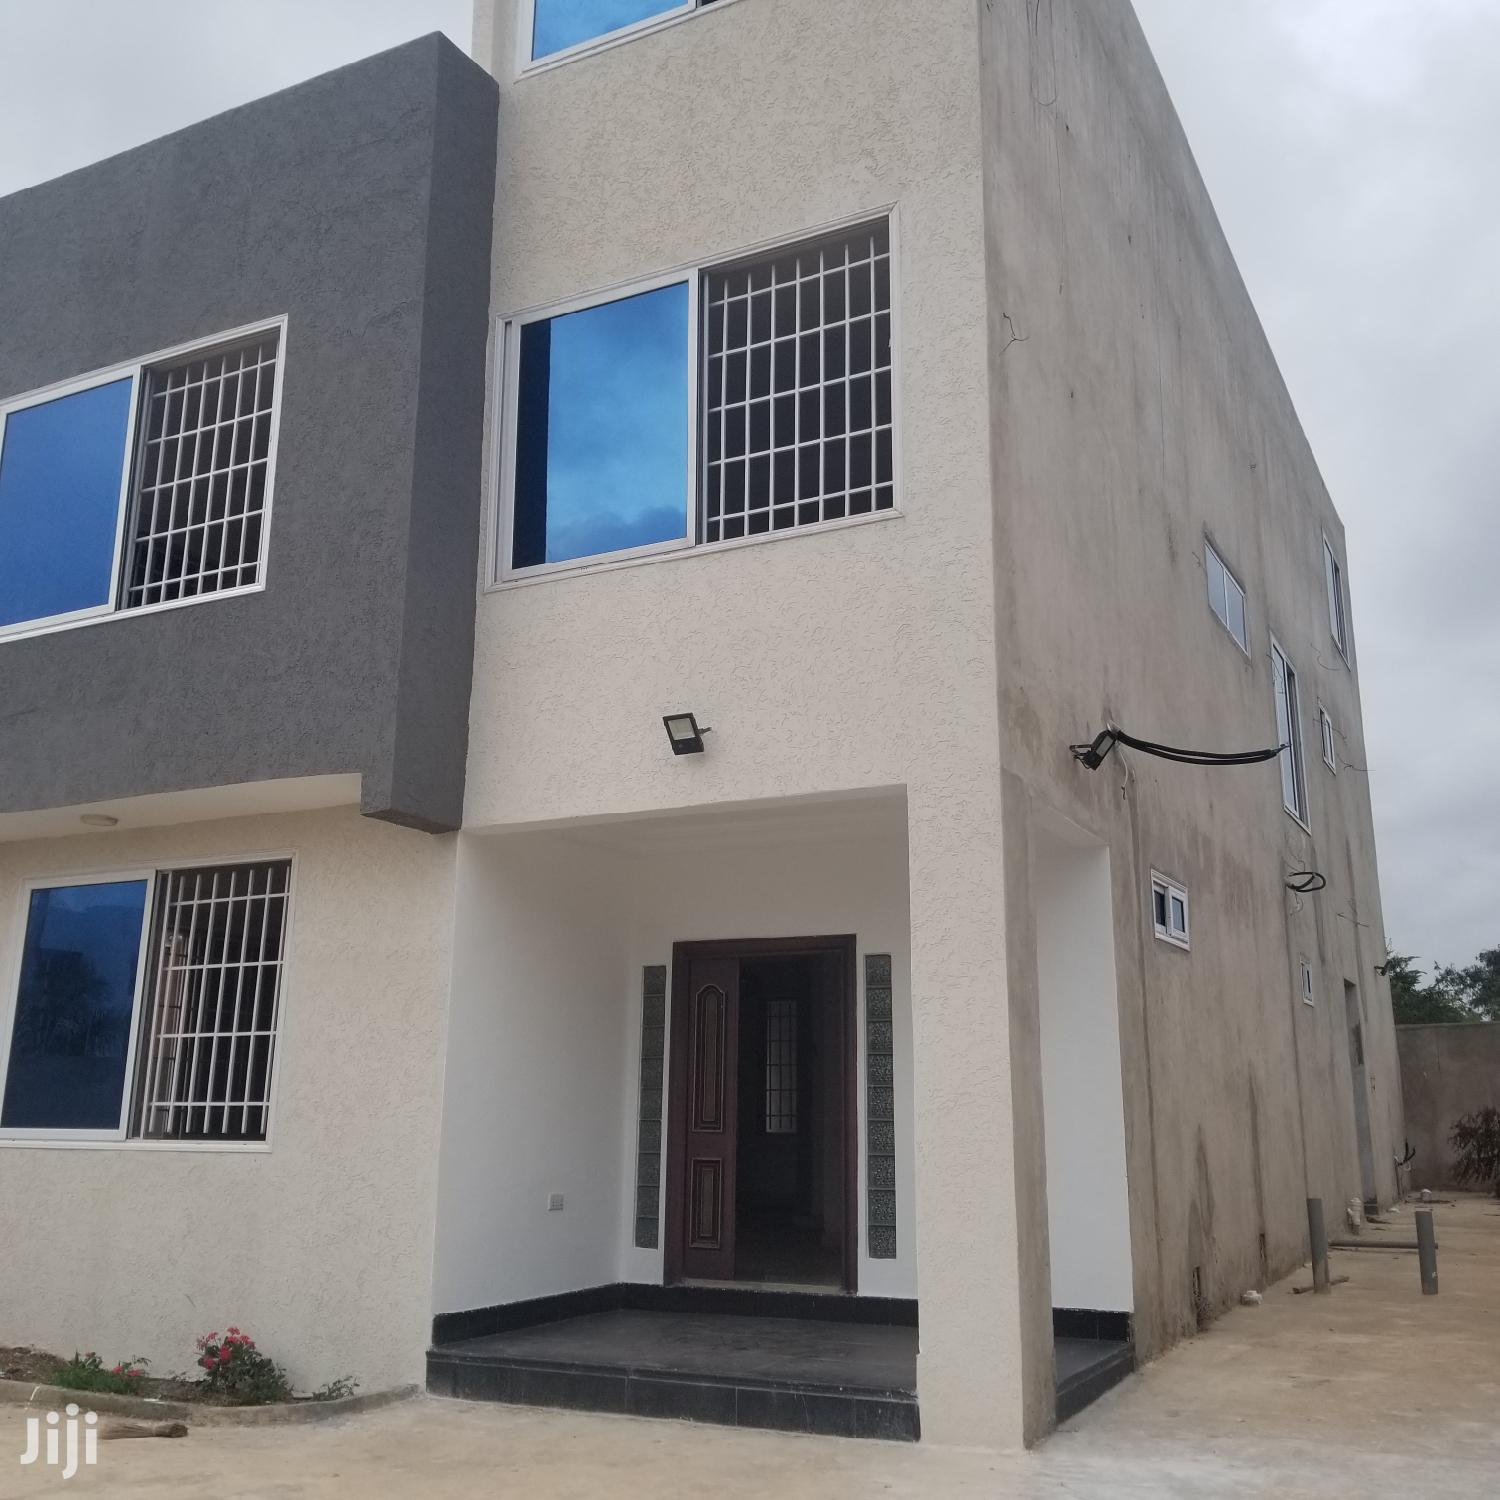 Elegant 5 Bedroom House | Houses & Apartments For Sale for sale in Accra Metropolitan, Greater Accra, Ghana